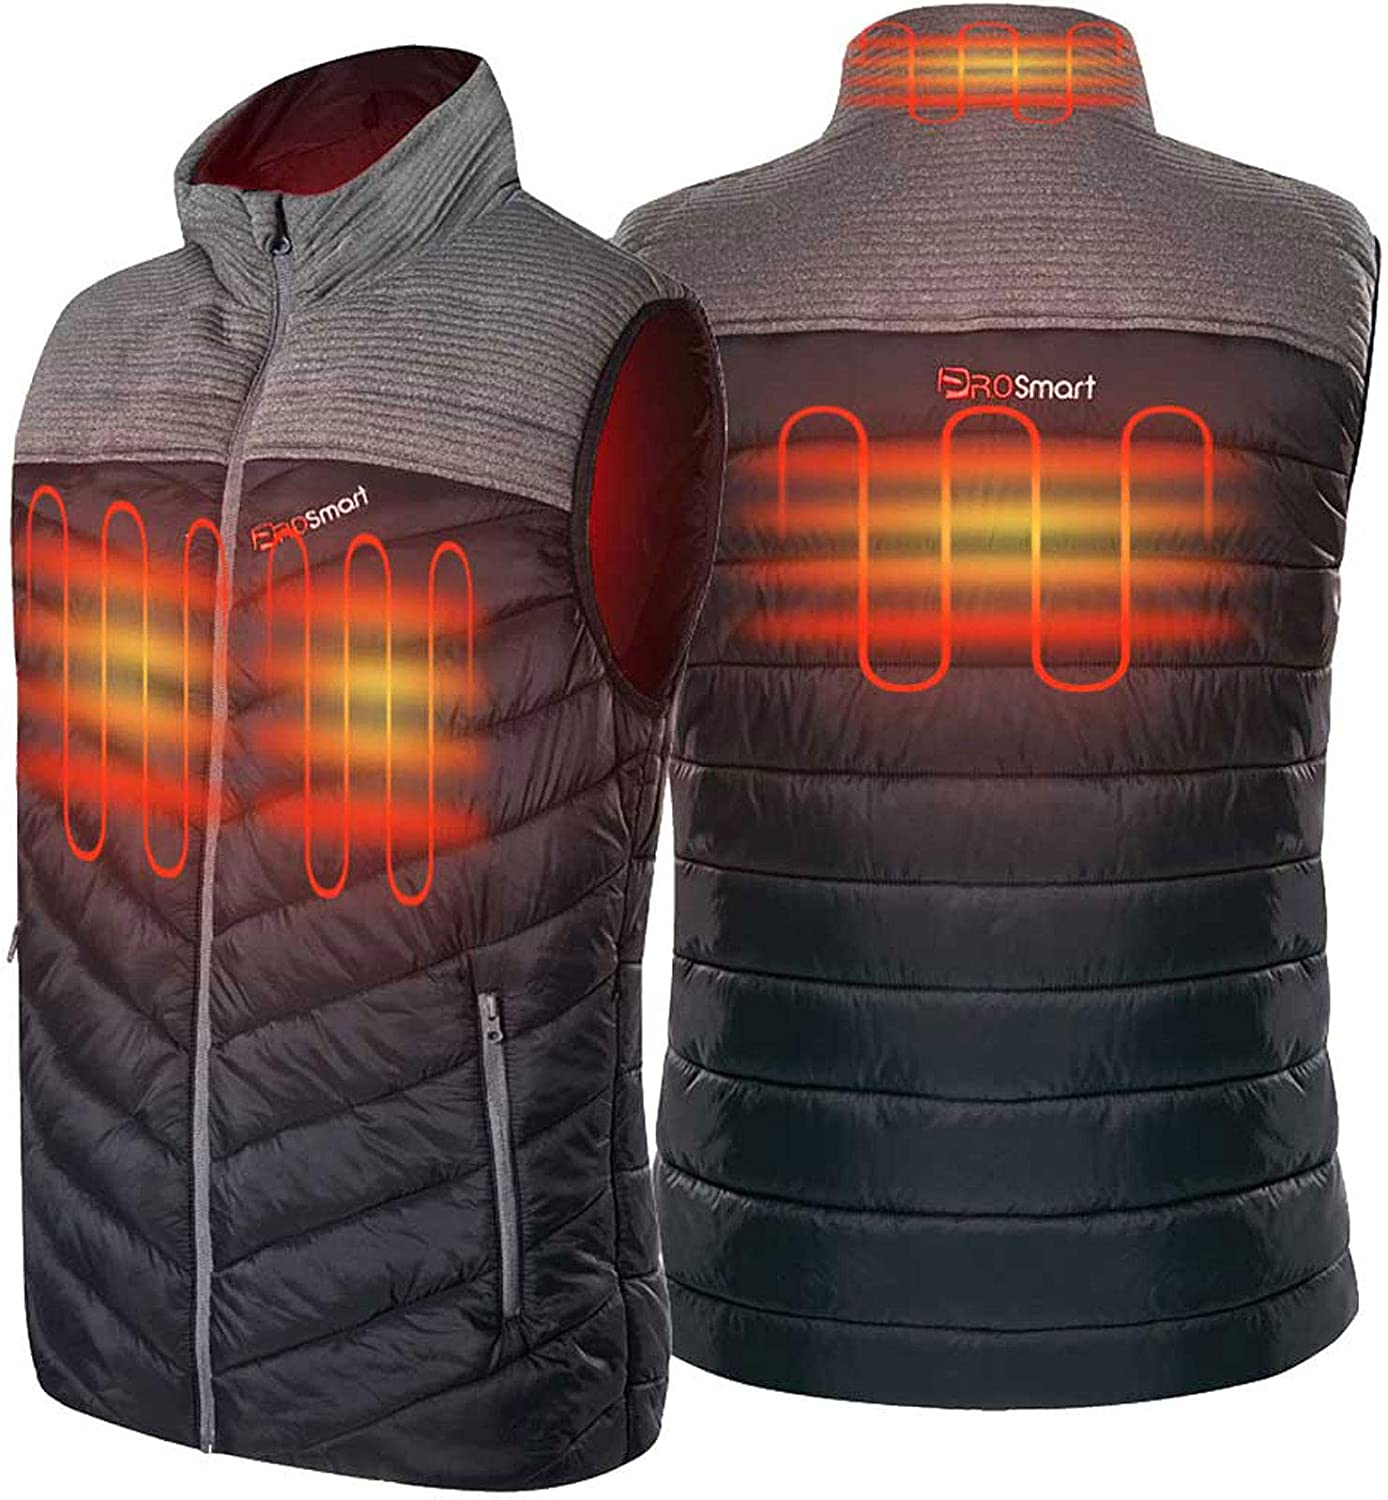 PROSmart Men's Heated Vest Lightweight Electric Heated Vest with Battery Pack